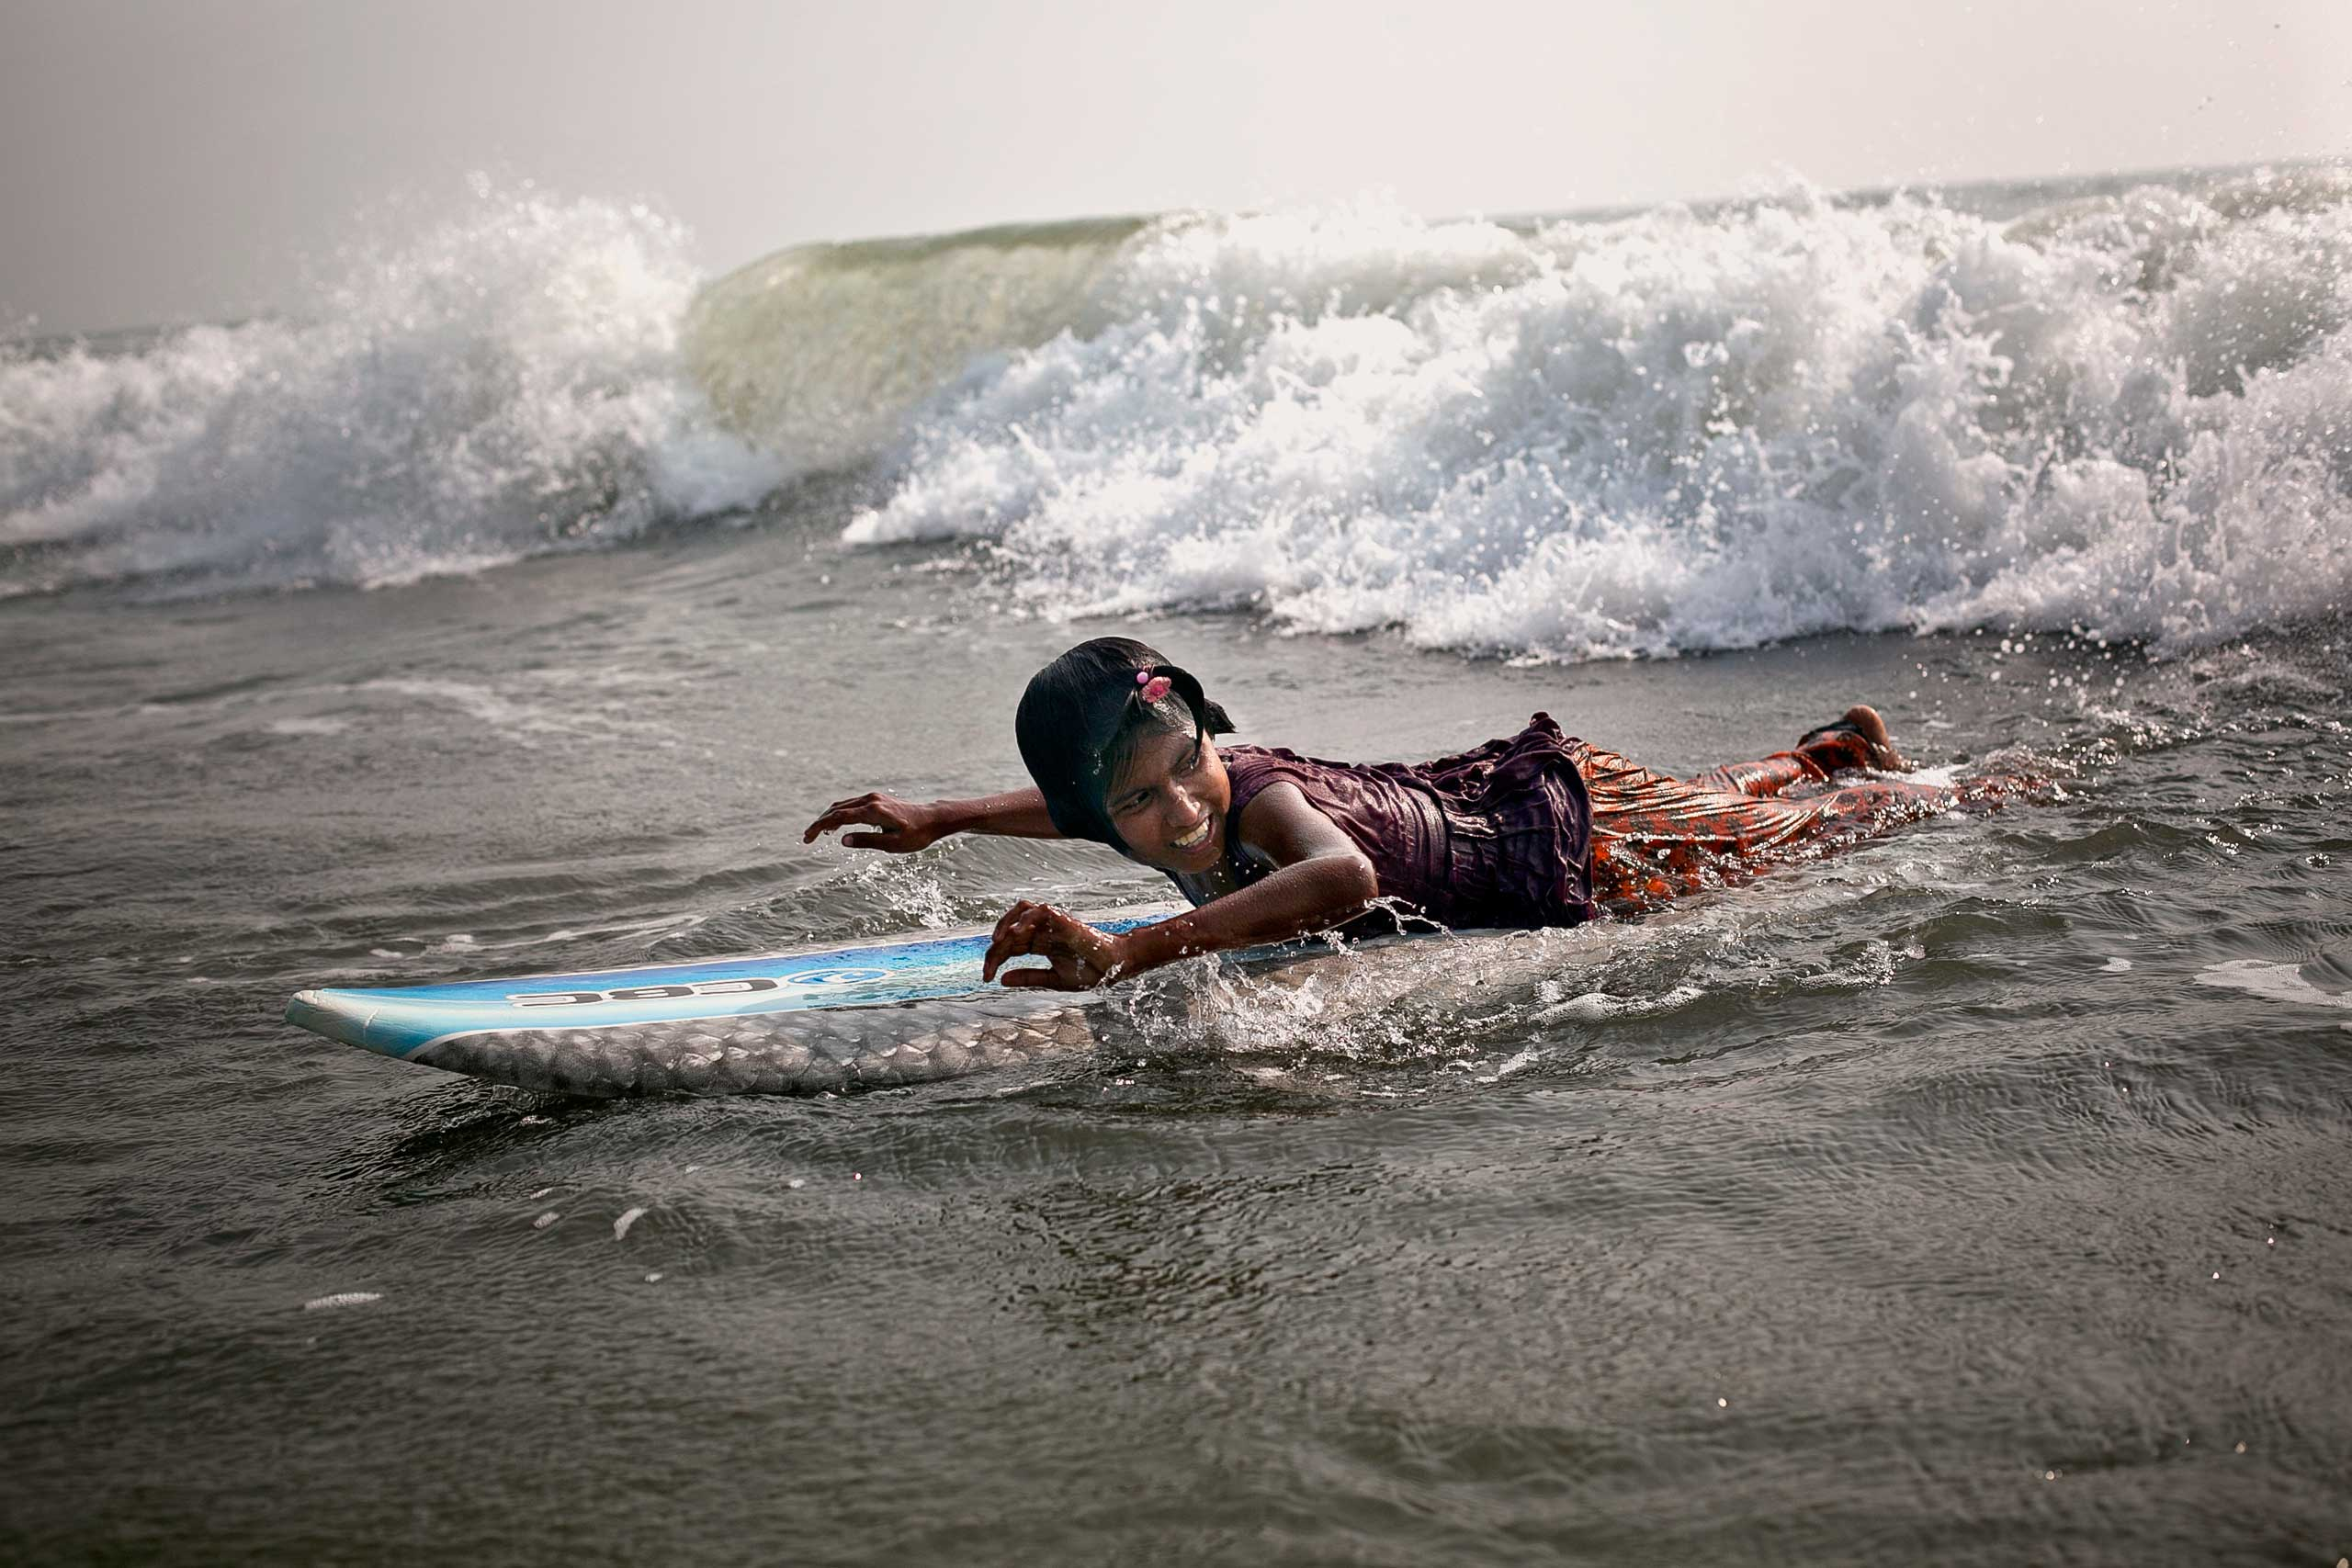 Ten-year-old Johanara surfs. The Bangladeshi surf girls are a group of eight outgoing and spunky girls ranging in ages 10 to 13 years old, who live and work in Cox's Bazar, Bangladesh. Poverty is forcing them into an early adulthood, as they are obligated to shoulder the responsibility of earning money to help feed their families. Early each morning, rain or shine, they leave their homes and make their way to the beach, where they work selling jewelry and eggs until late into the night before returning home. Their families are unable survive without the girls' income.